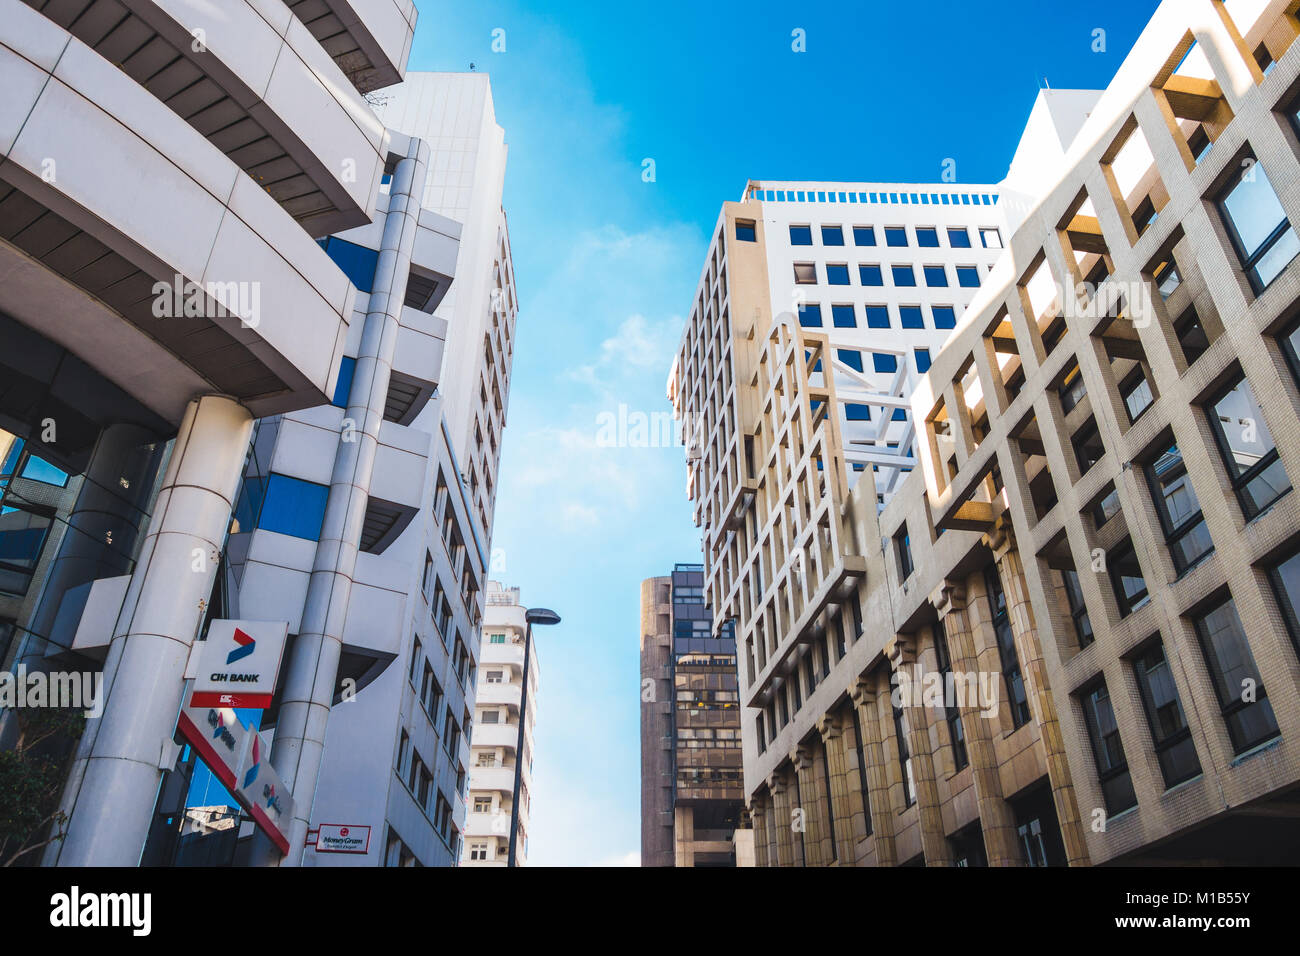 Casablanca, Morocco - 21 January 2018 : low angle view of CIH bank building and others in the financial district - Stock Image